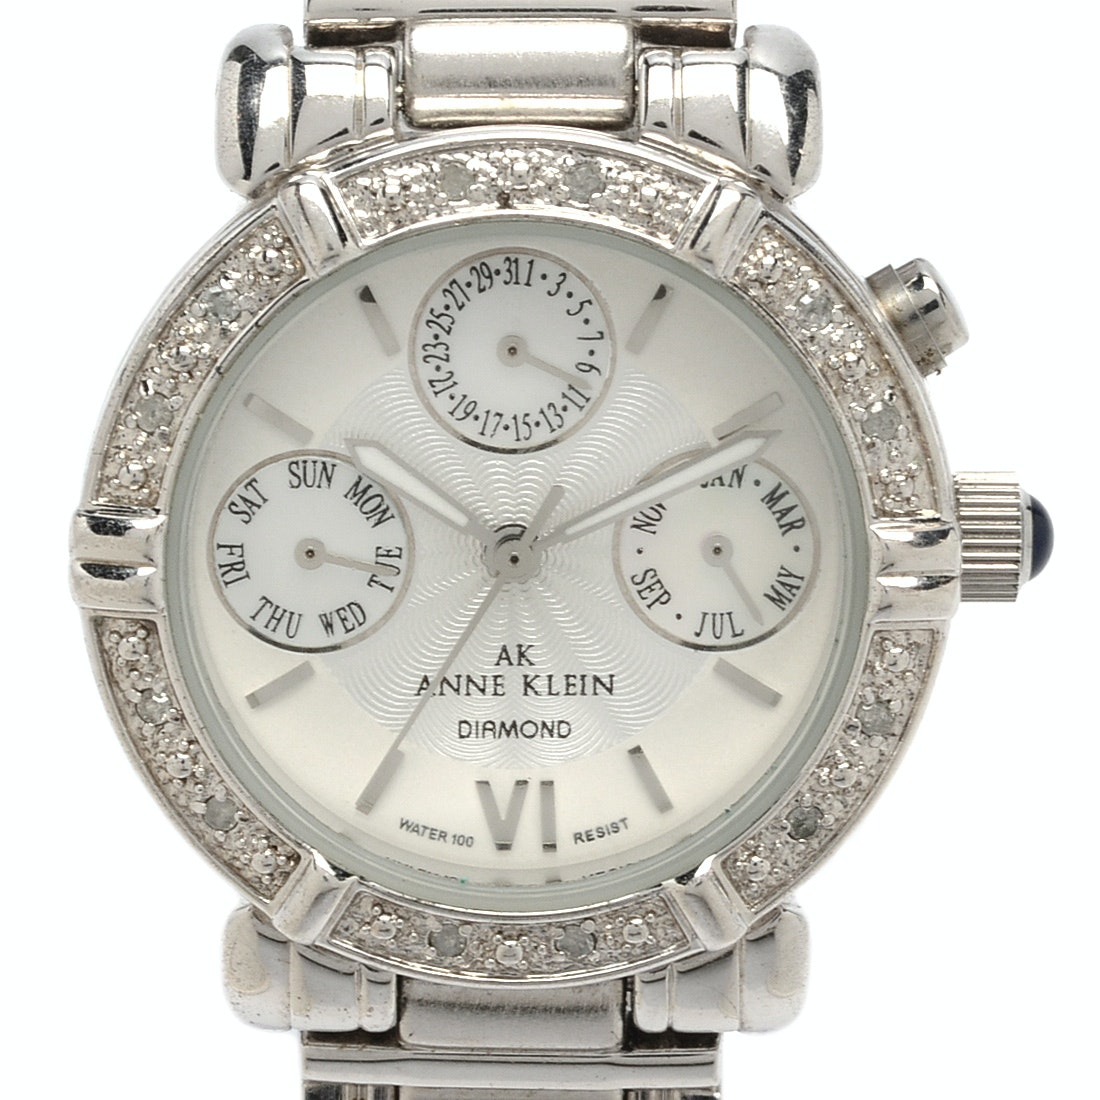 Anne Klein Mother of Pearl and Diamond Wristwatch